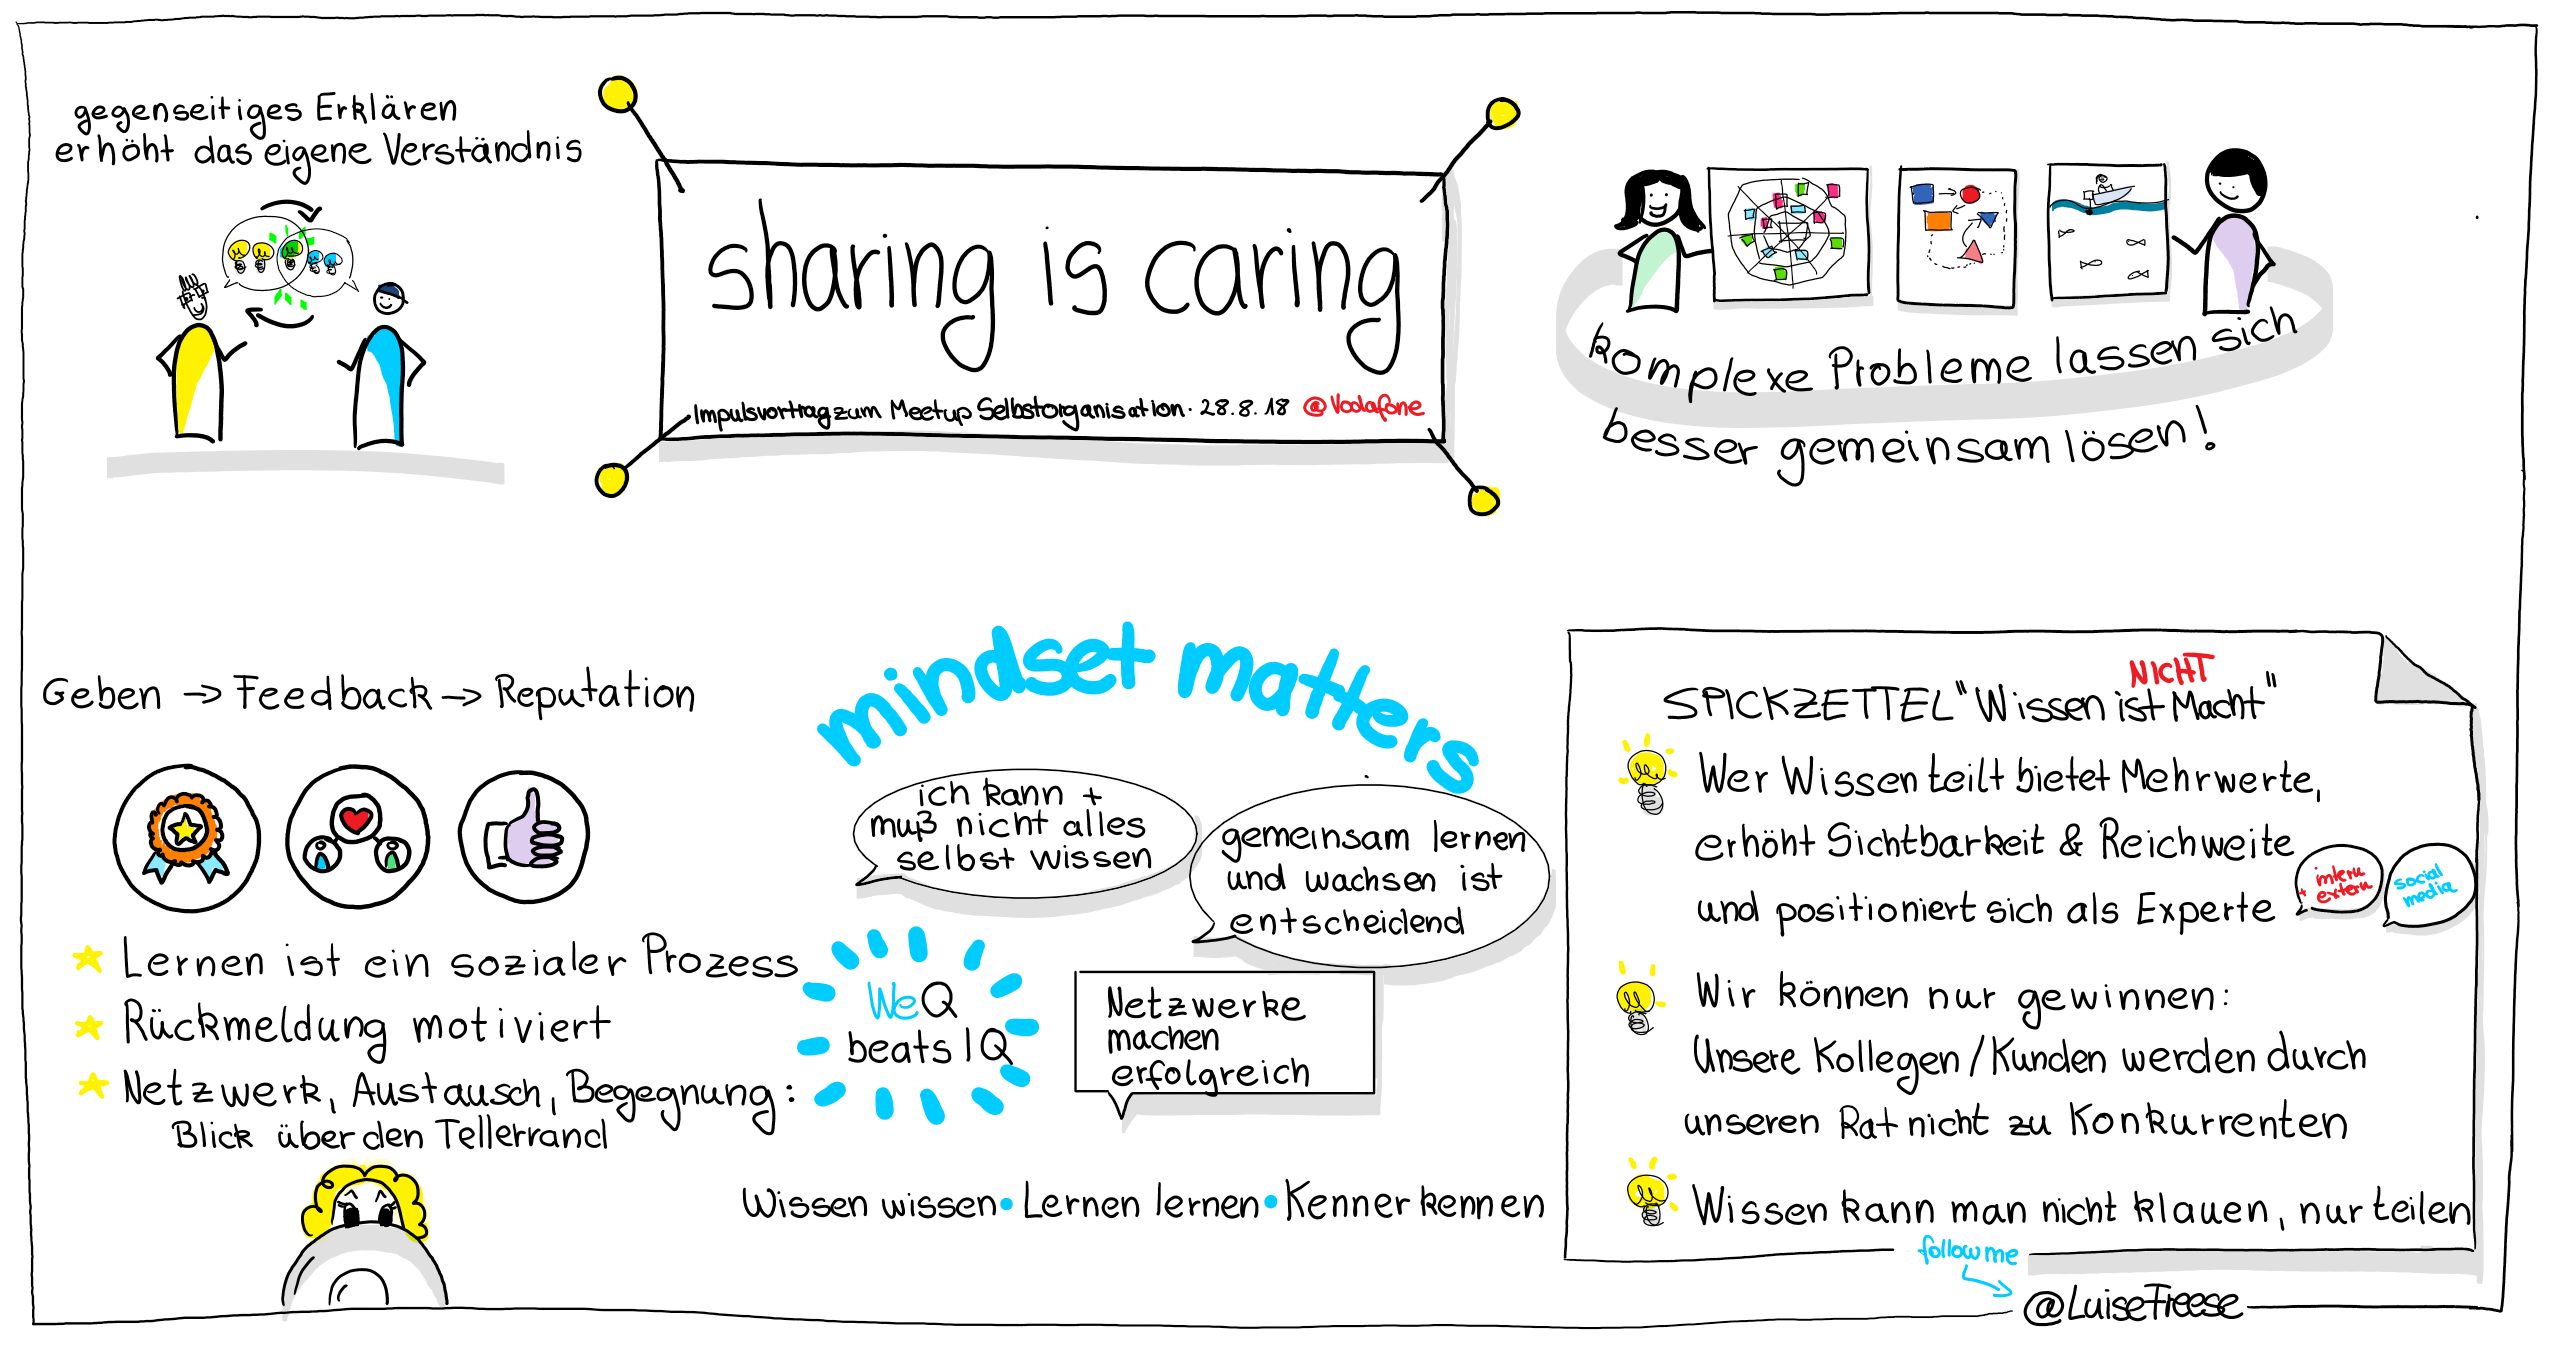 sketchnote meines blogposts Sharing is caring